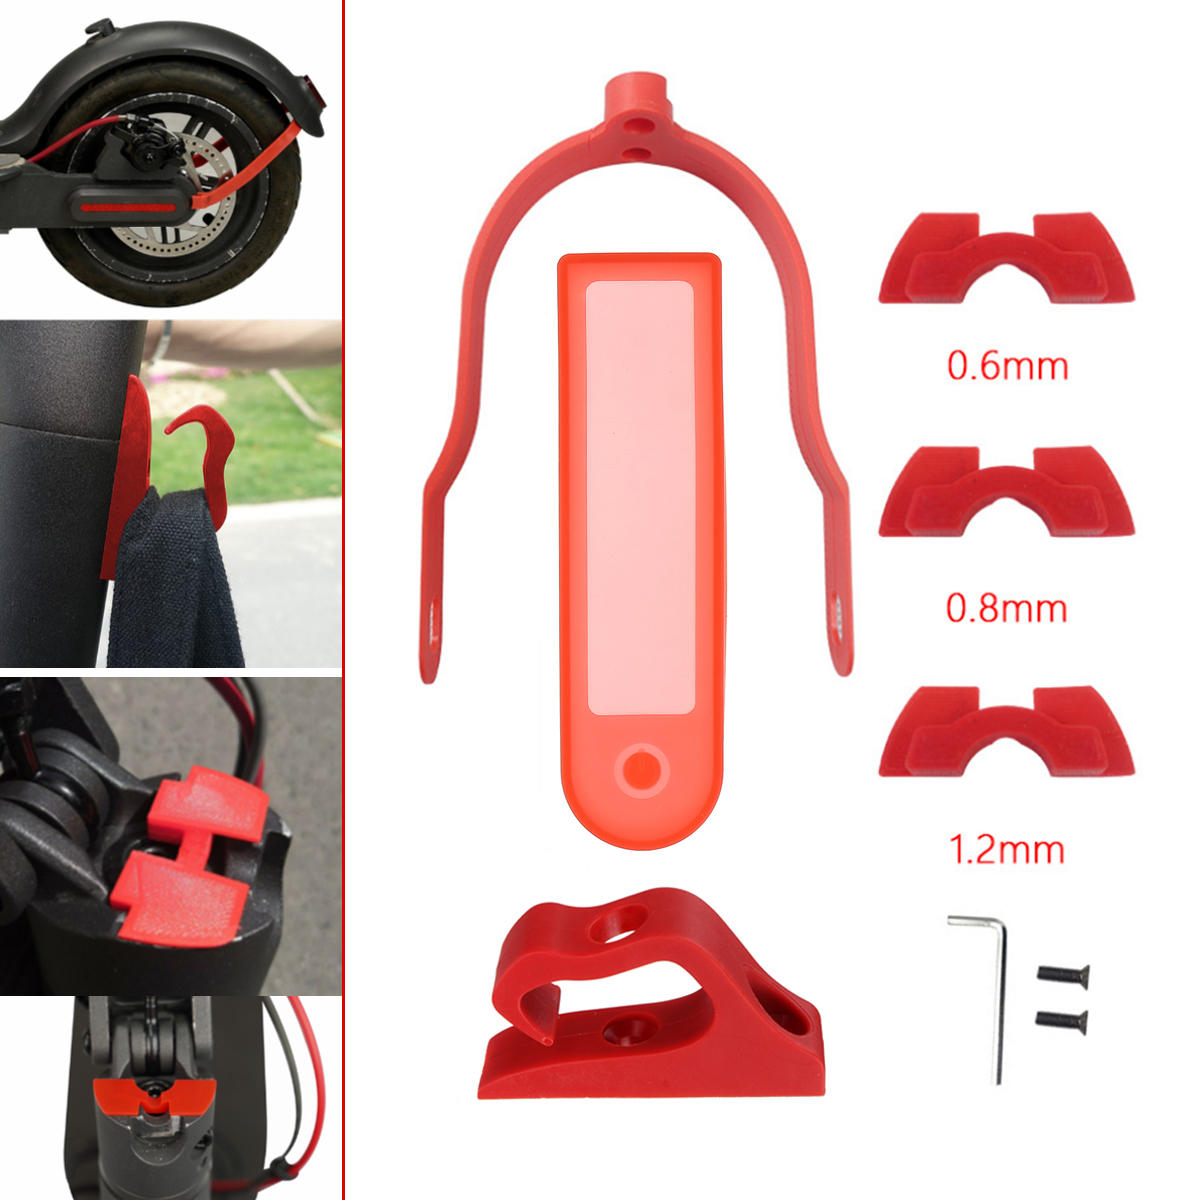 Red Must have kit for Xiaomi Mijia M365 and M187 Scooter